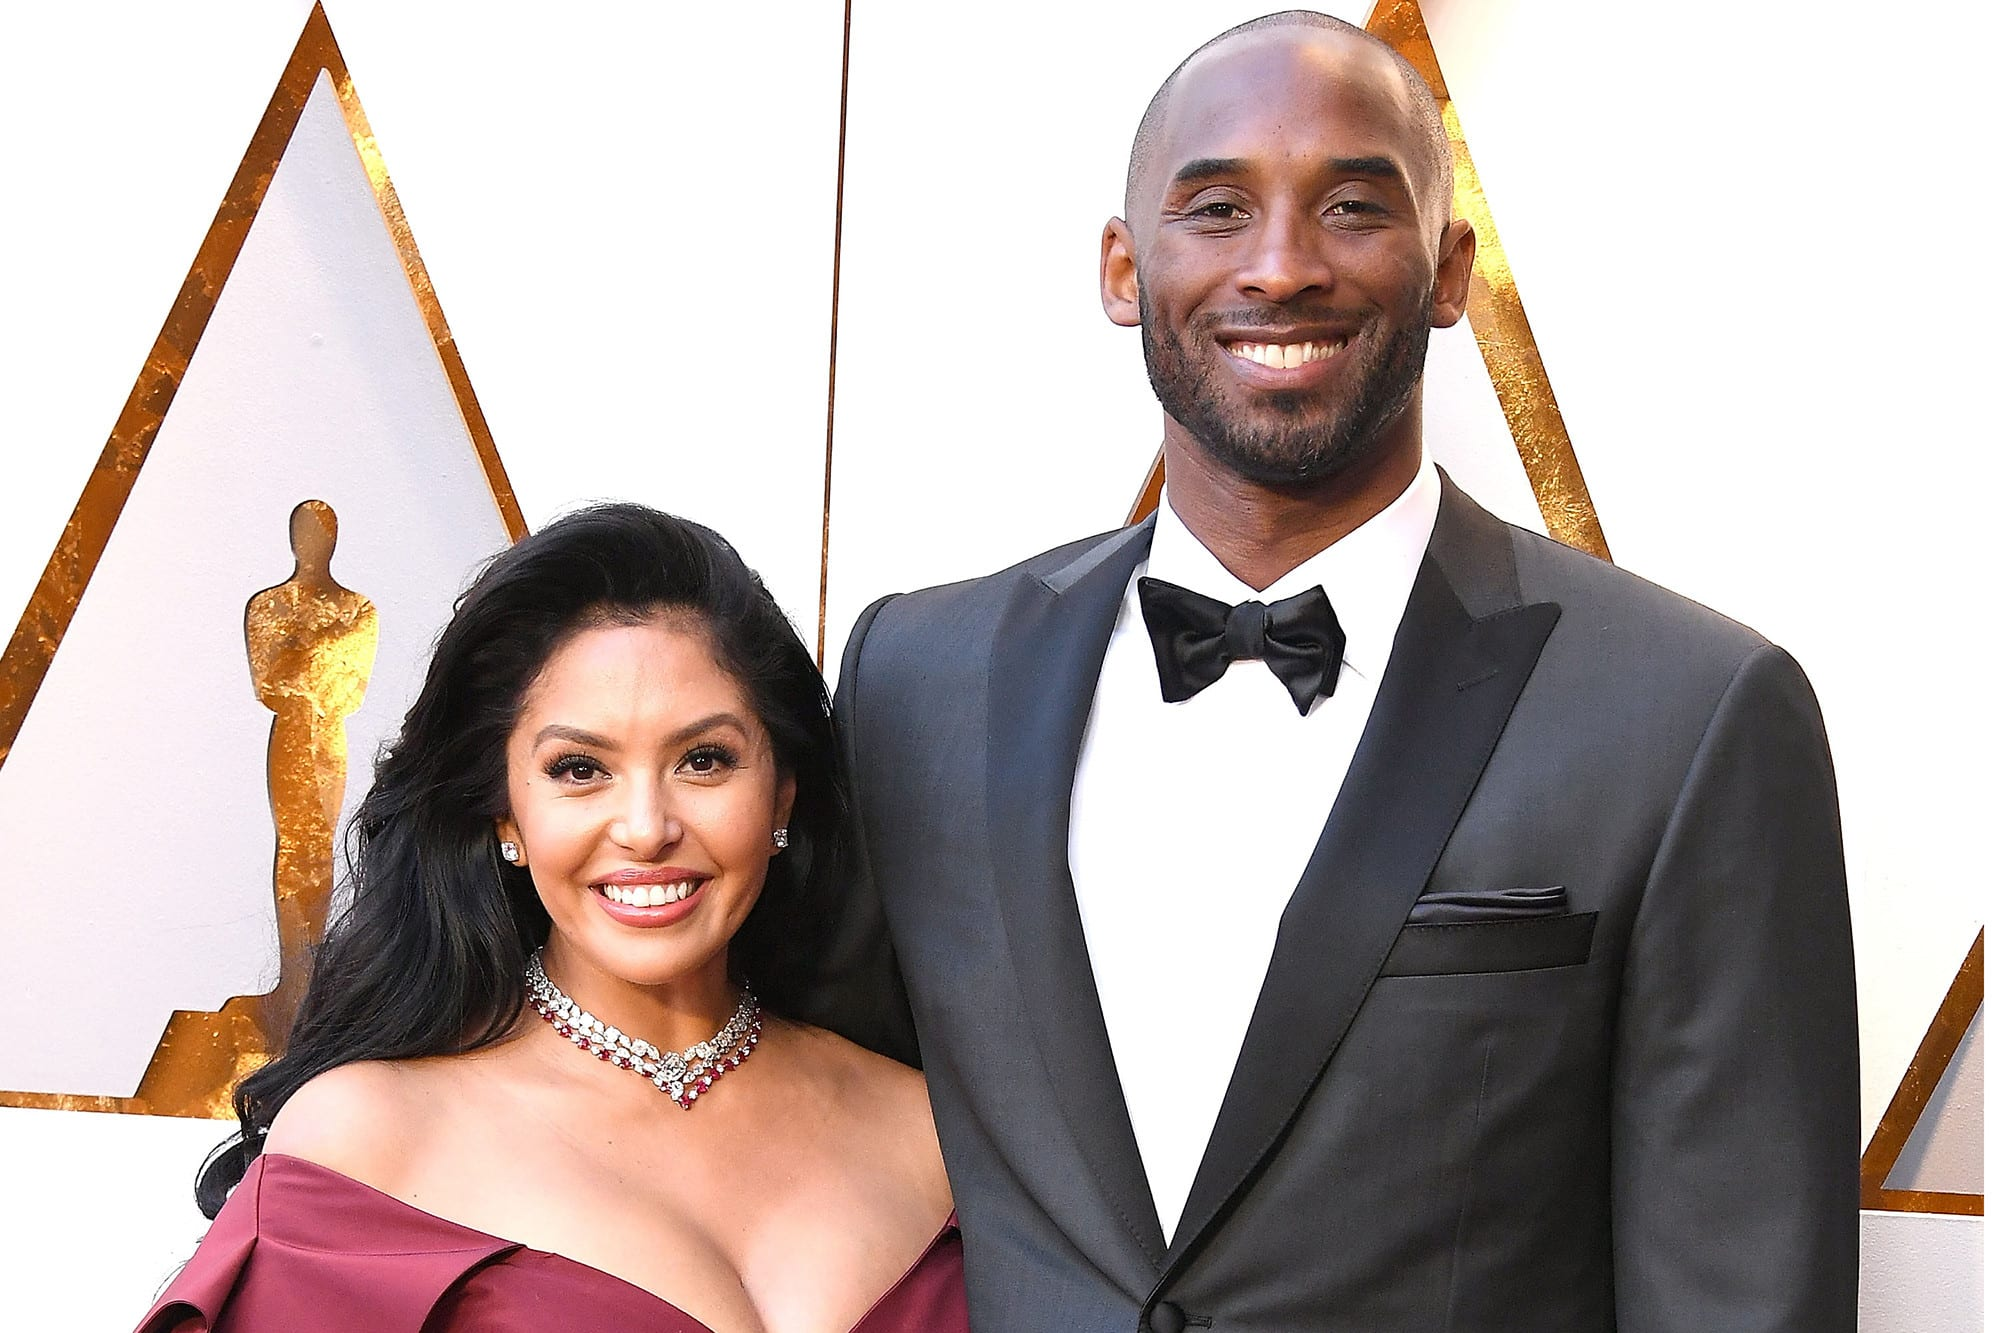 Vanessa Bryant Posts Heartfelt Message About Kobe on Anniversary of His Retirement